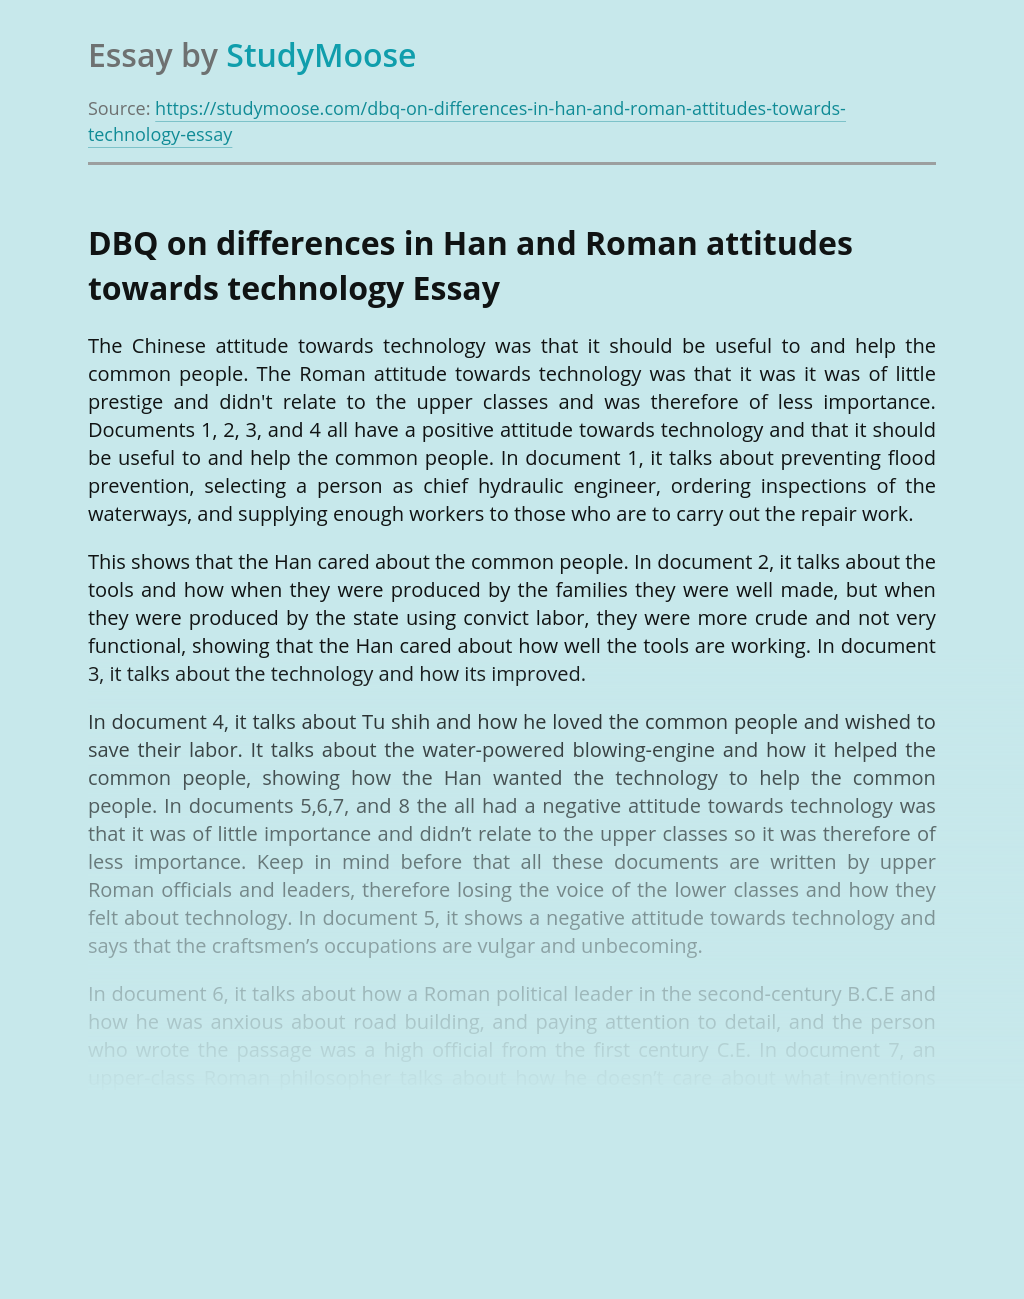 DBQ on differences in Han and Roman attitudes towards technology